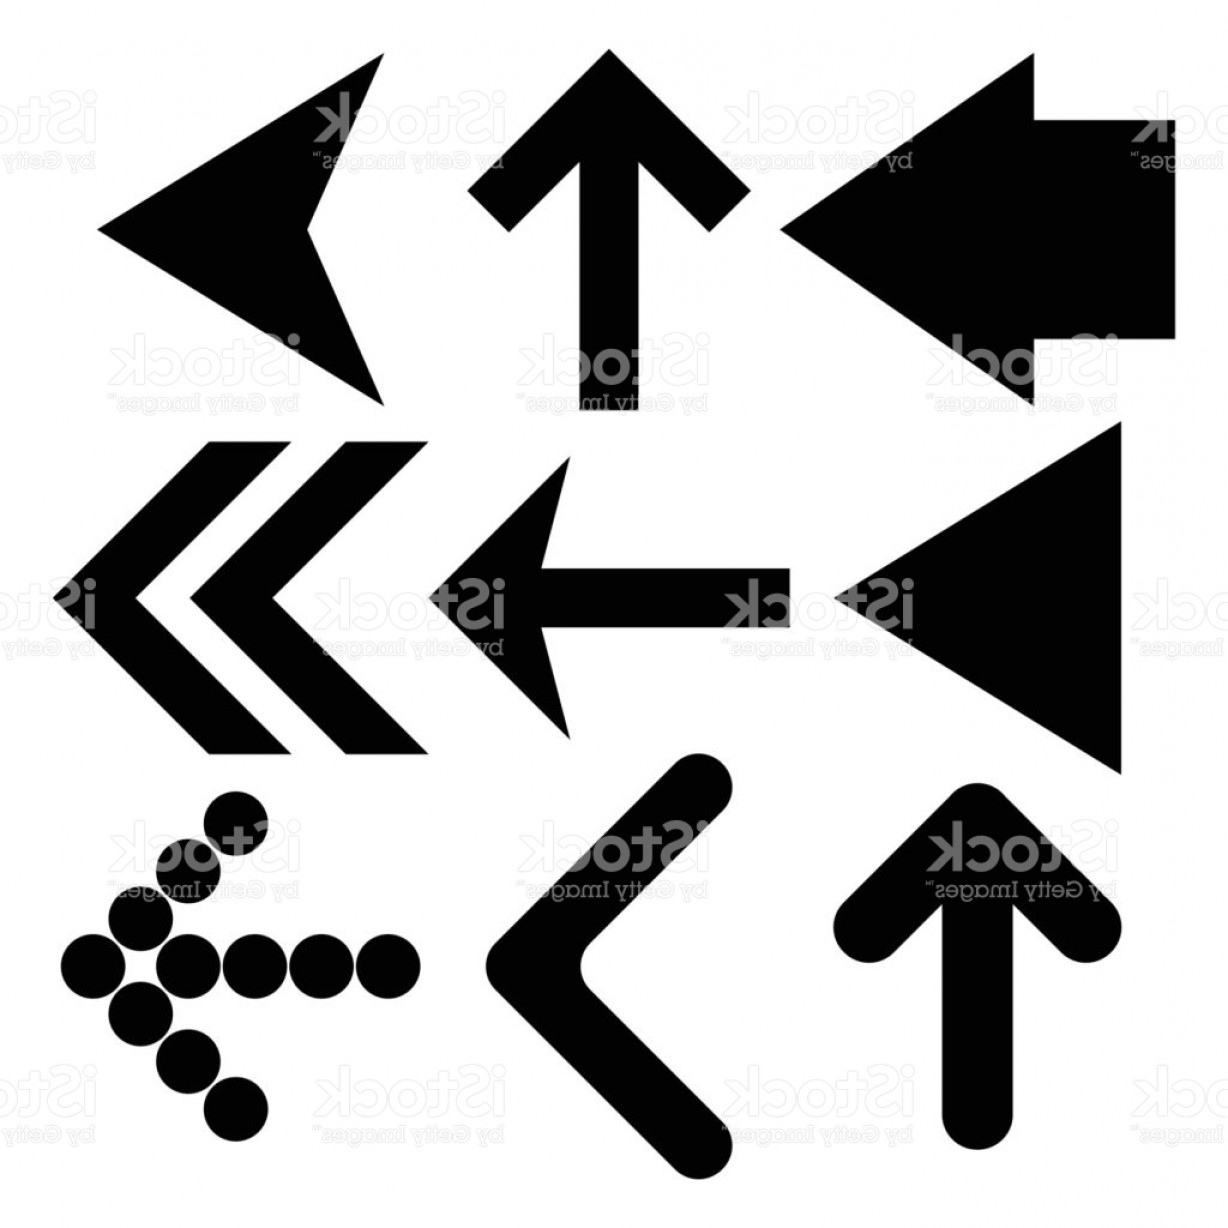 Up And Right Arrows Vector: Black Arrows Set Up And Right Direction Gm